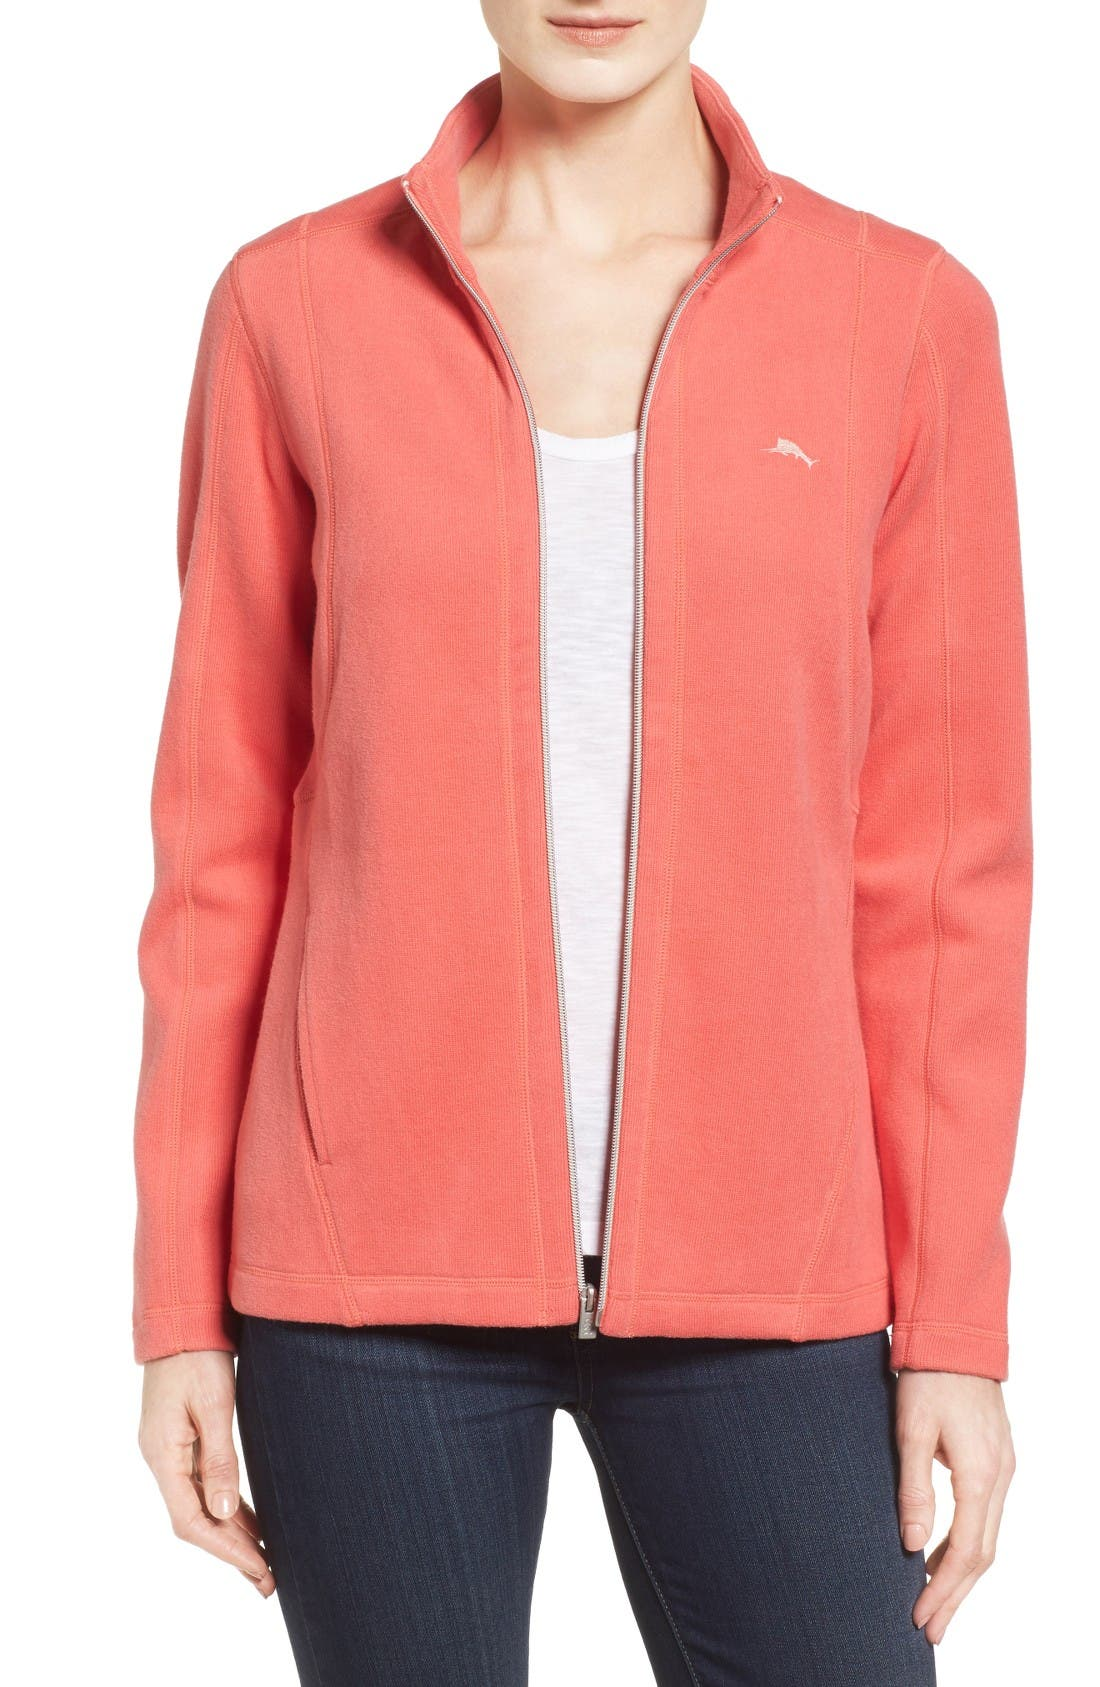 Tommy Bahama 'Aruba' Full Zip Sweatshirt